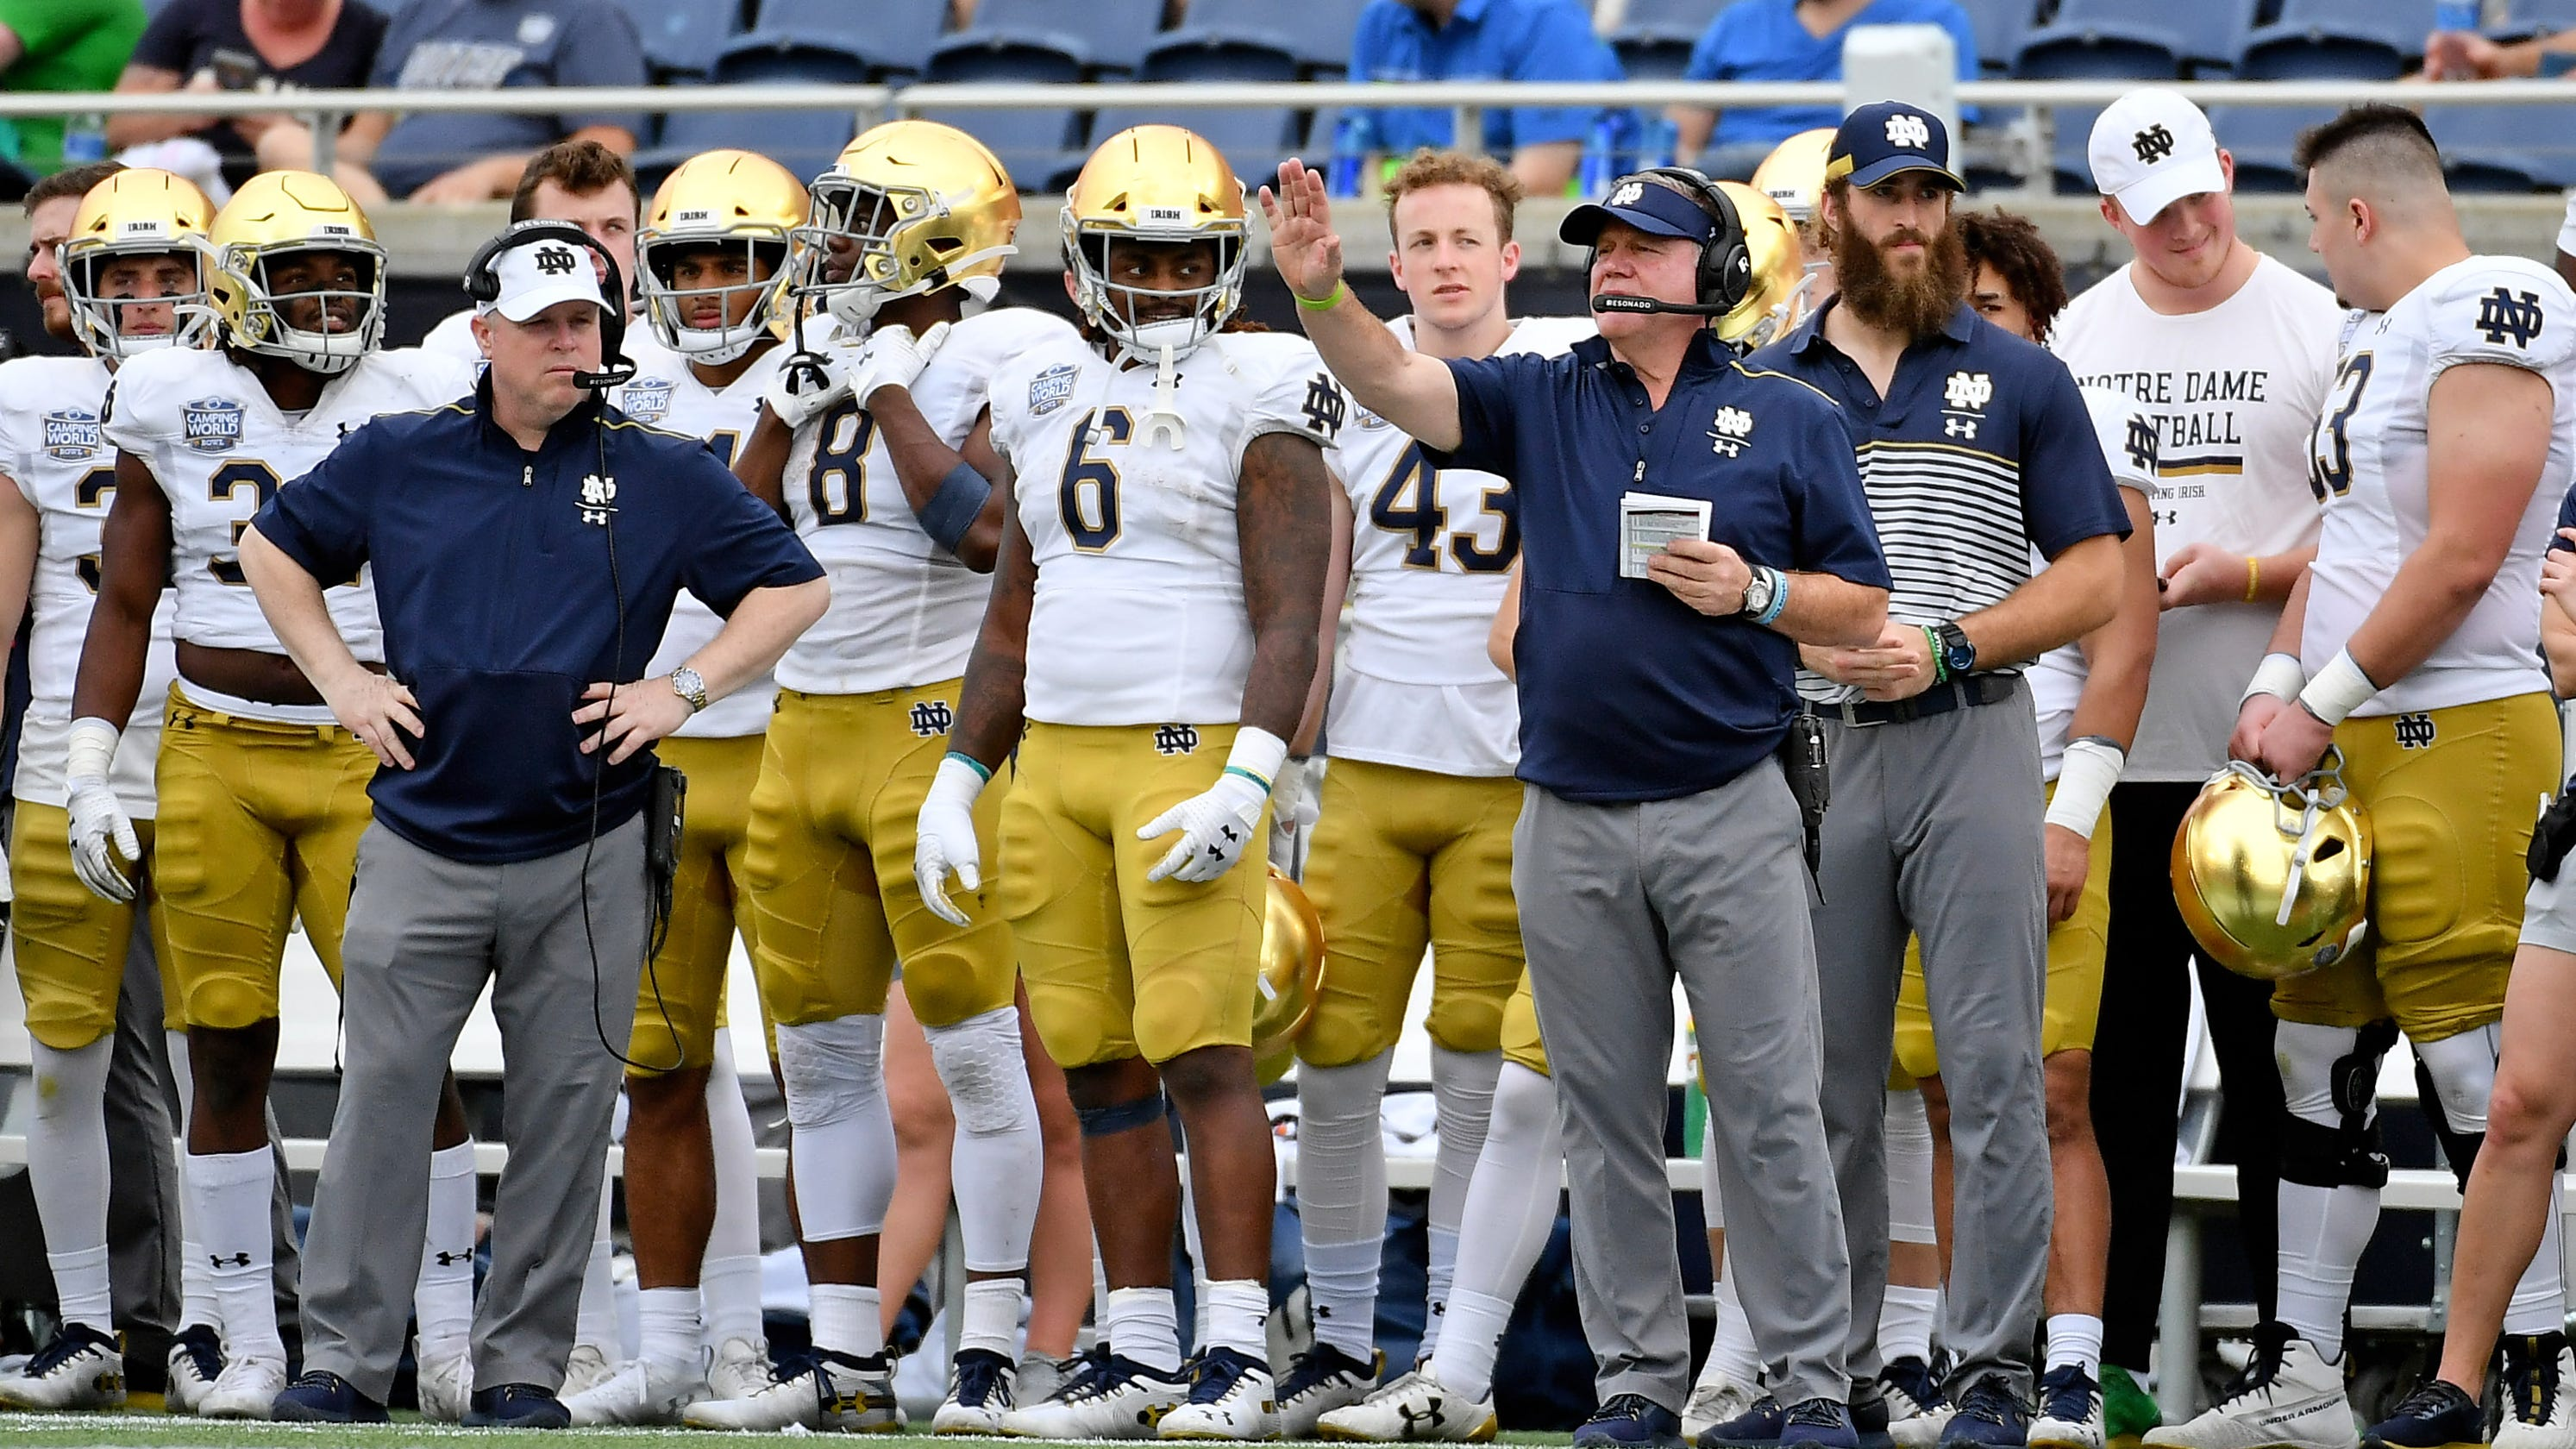 Notre Dame drops Duke as it plays ACC football for first time